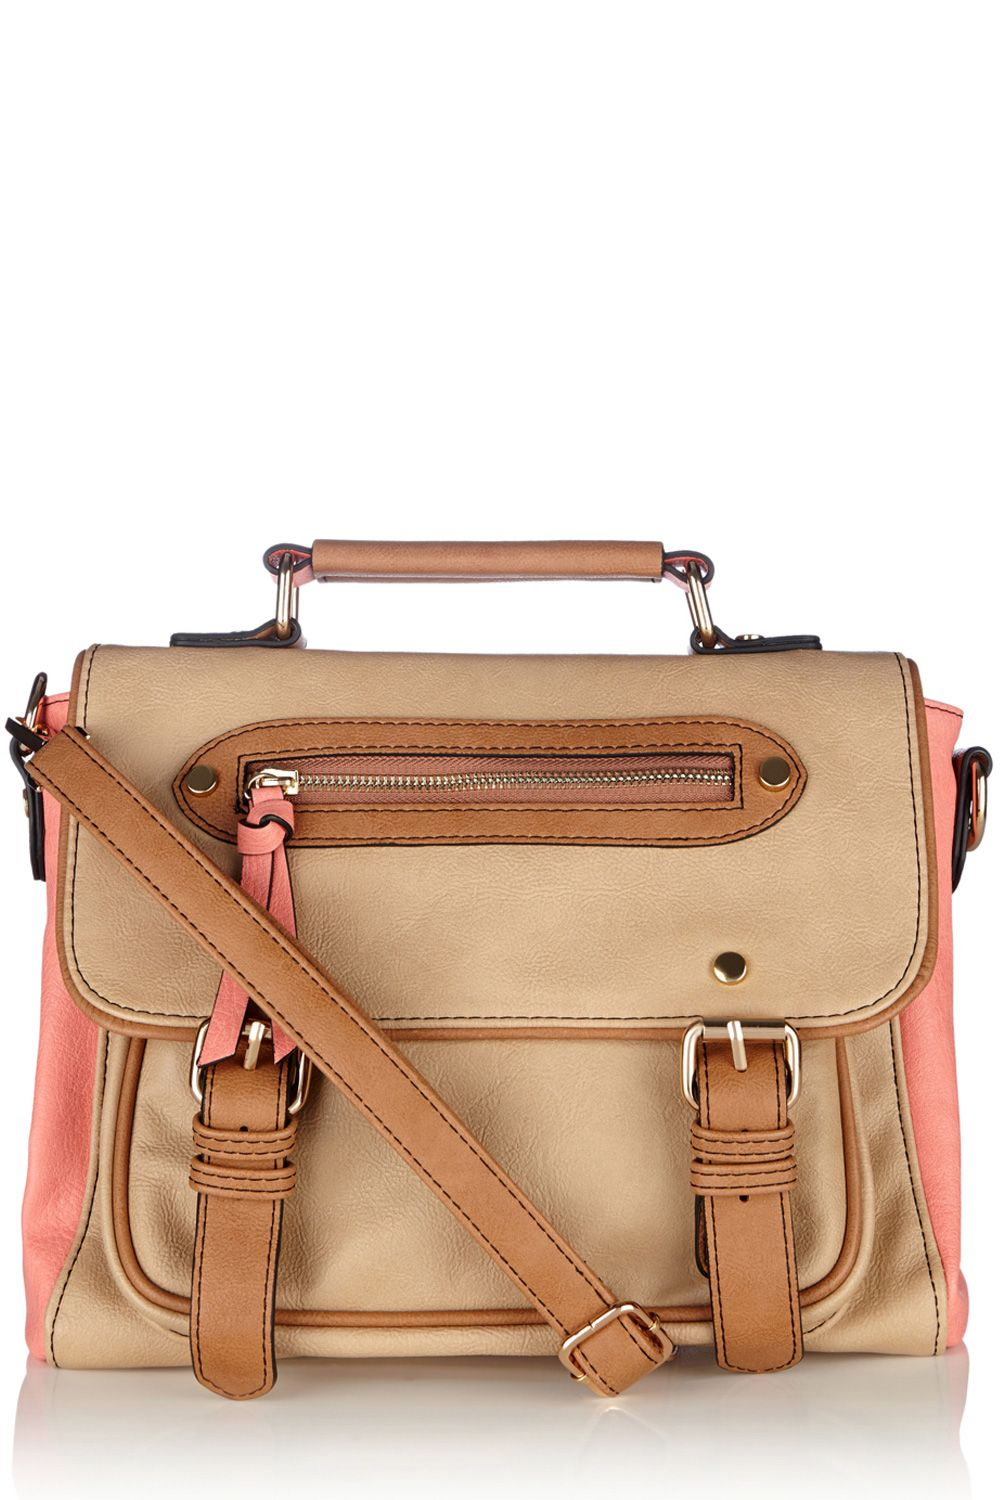 Emily satchel bag